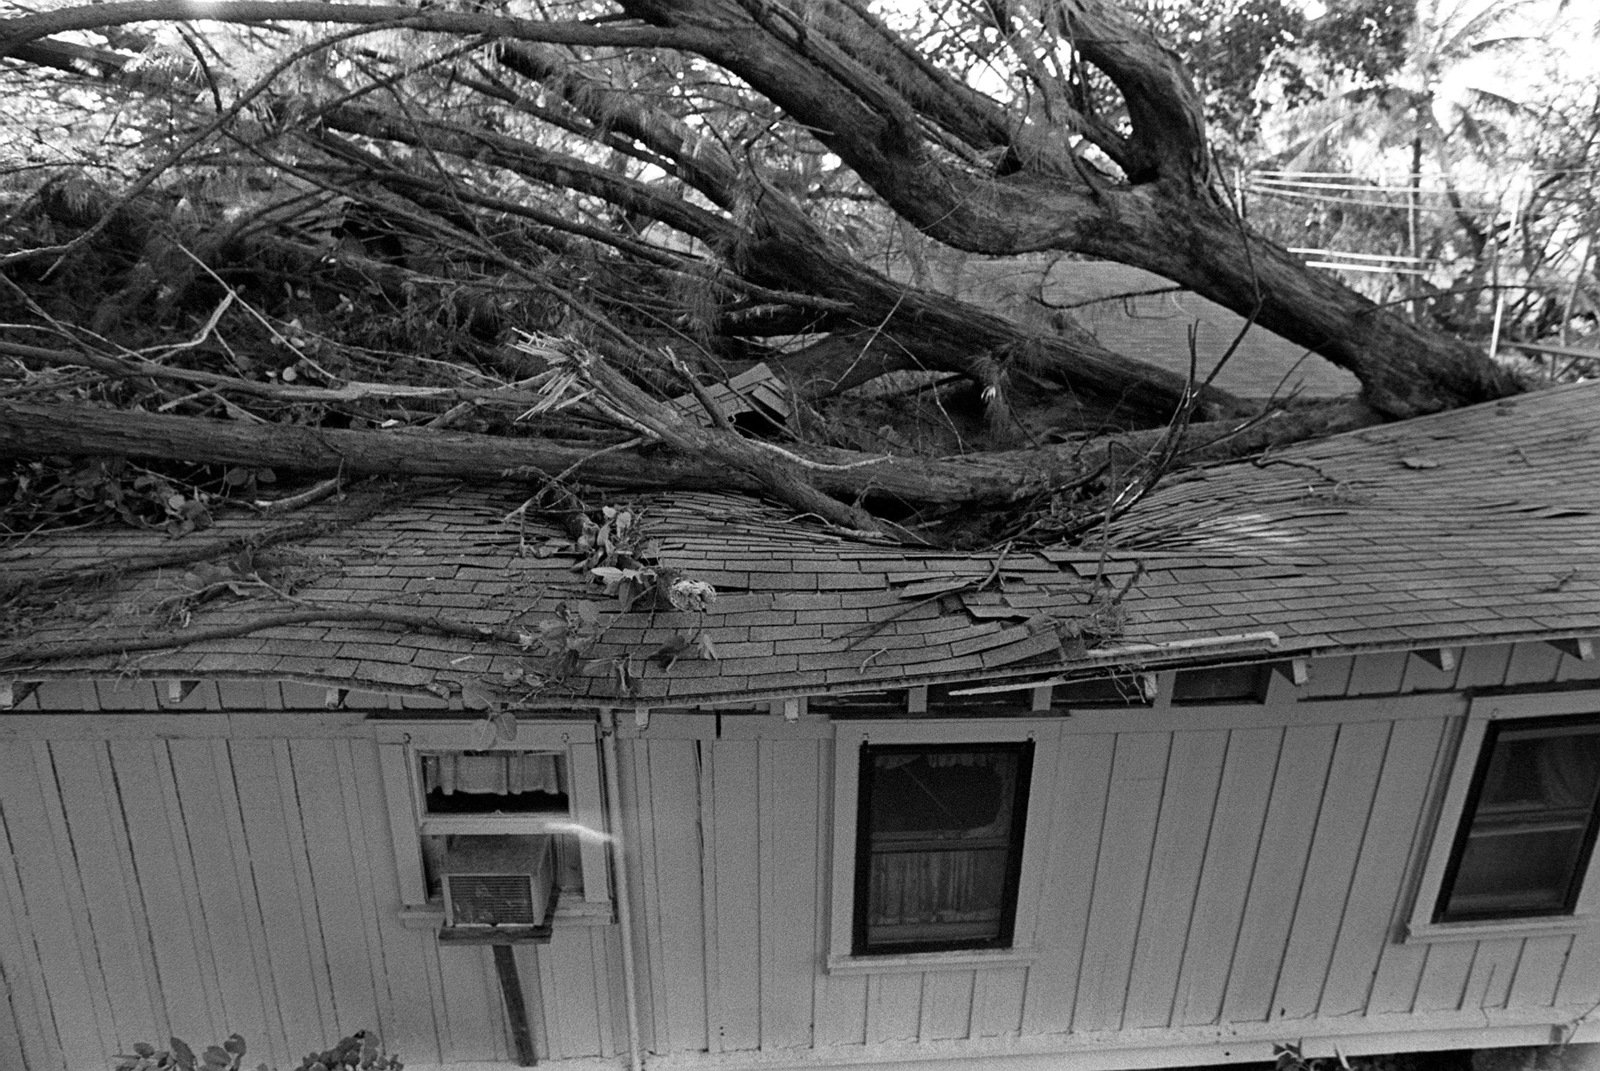 A large tree fell through the roof of this house during by Hurricane Iwa